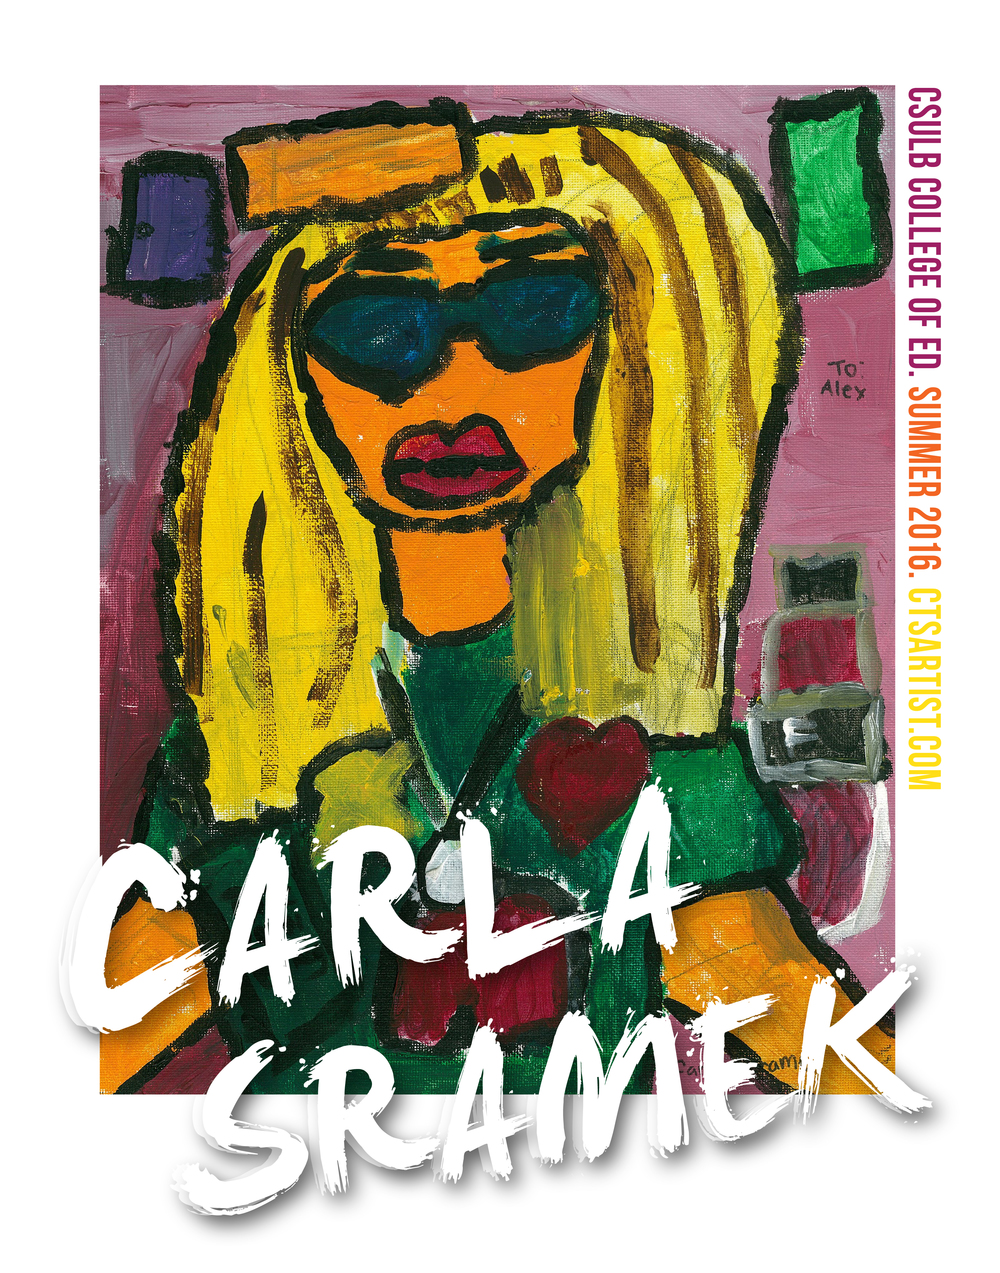 Carla's original artworks will be exhibited at the reception.  -- Reception date to be announced...